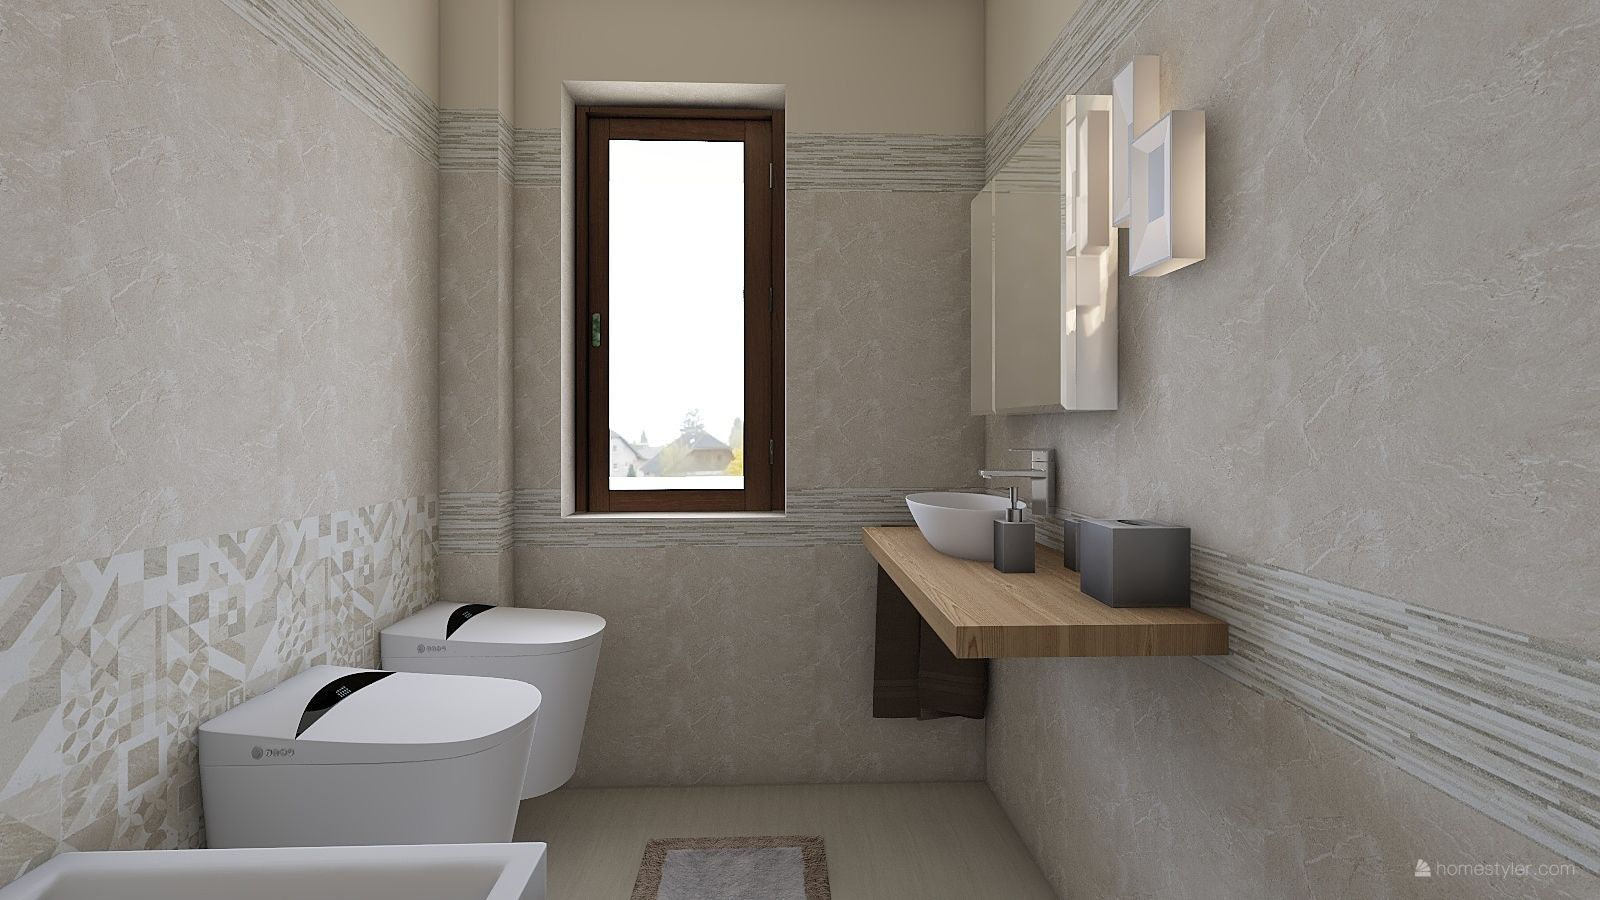 Bathroom Decor By Valentina Grande Bathroom Remodel Designs Bathrooms Remodel Interior Design Tools